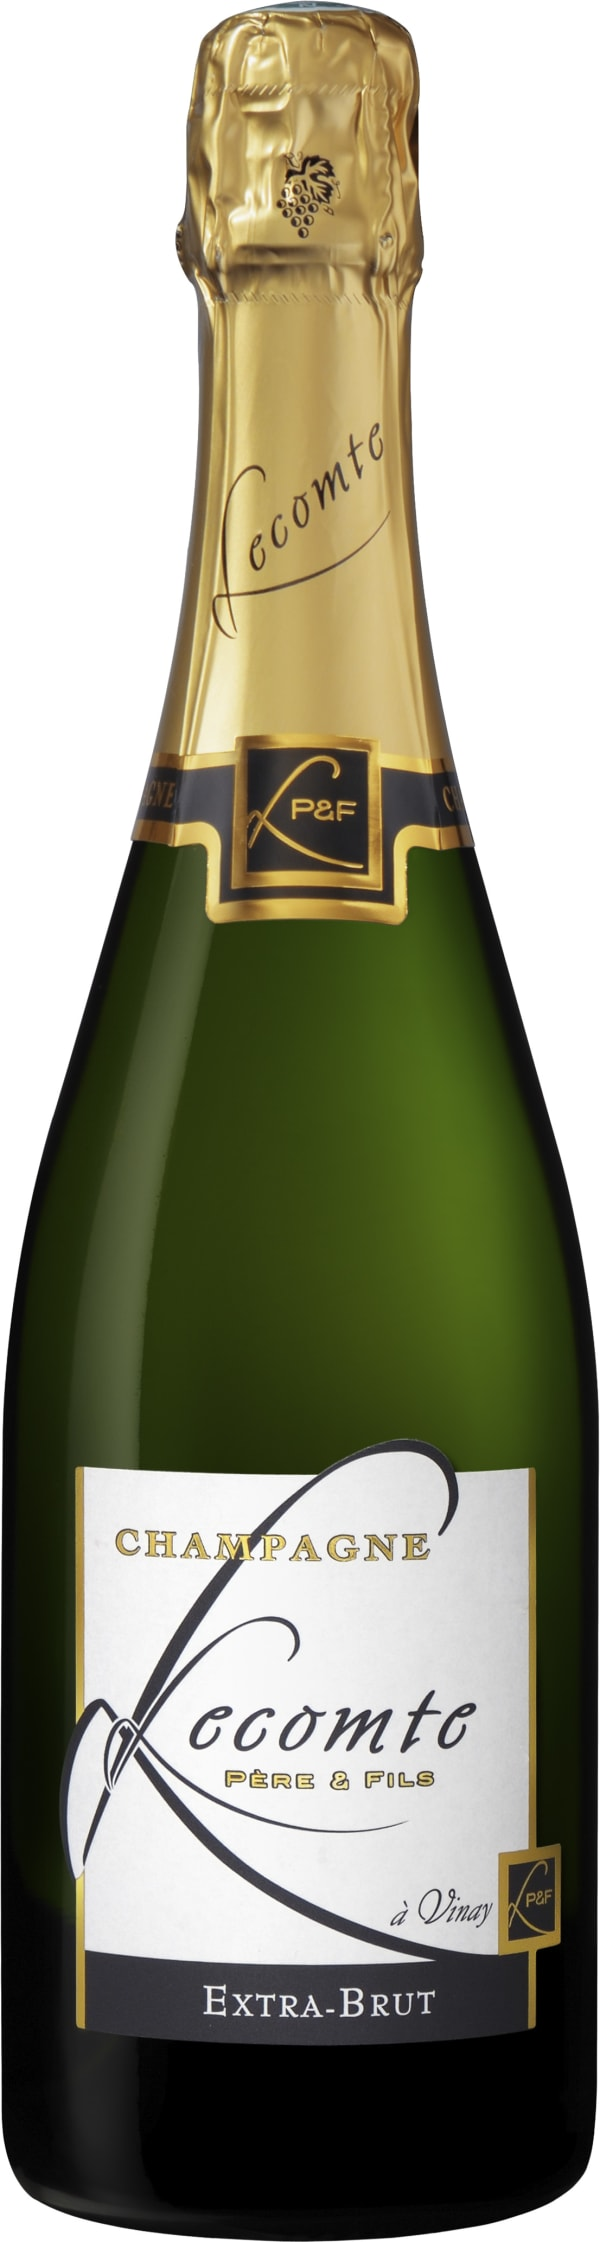 Lecomte Pere & Fils Champagne Extra Brut